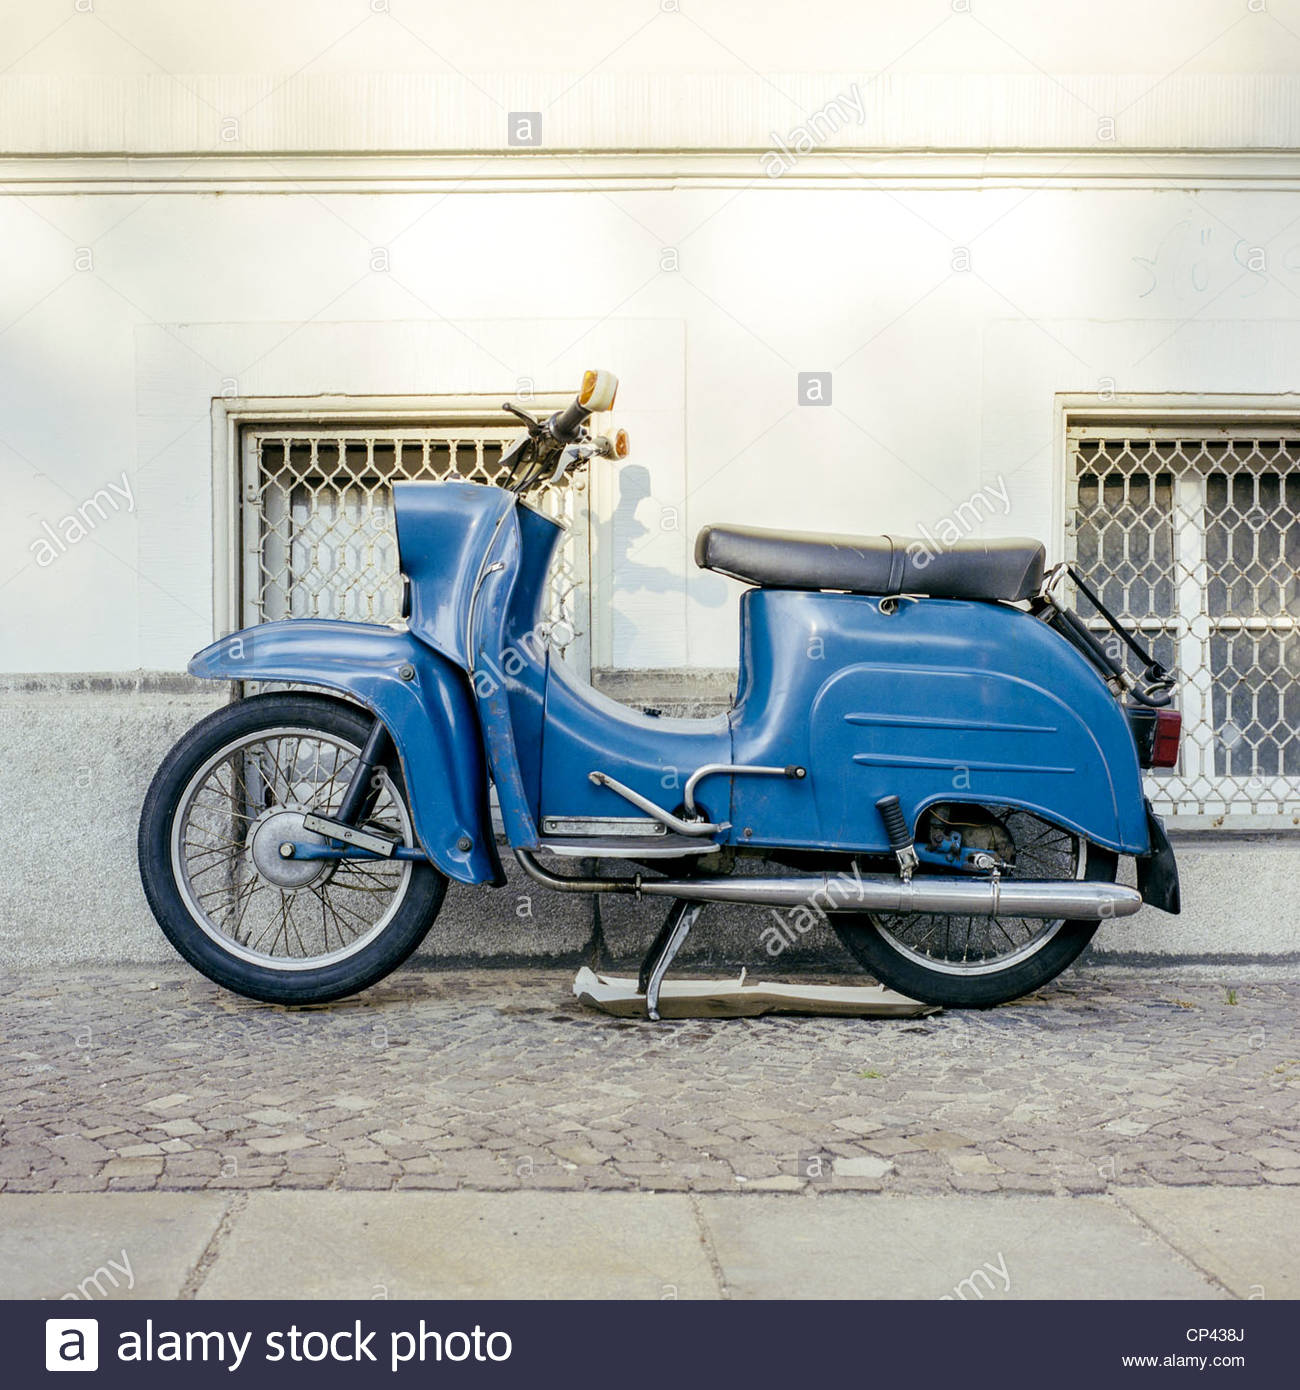 A Blue Vespa motorcyle parked on the sidewalk in Leipzig, Saxony, Germany - Stock Image